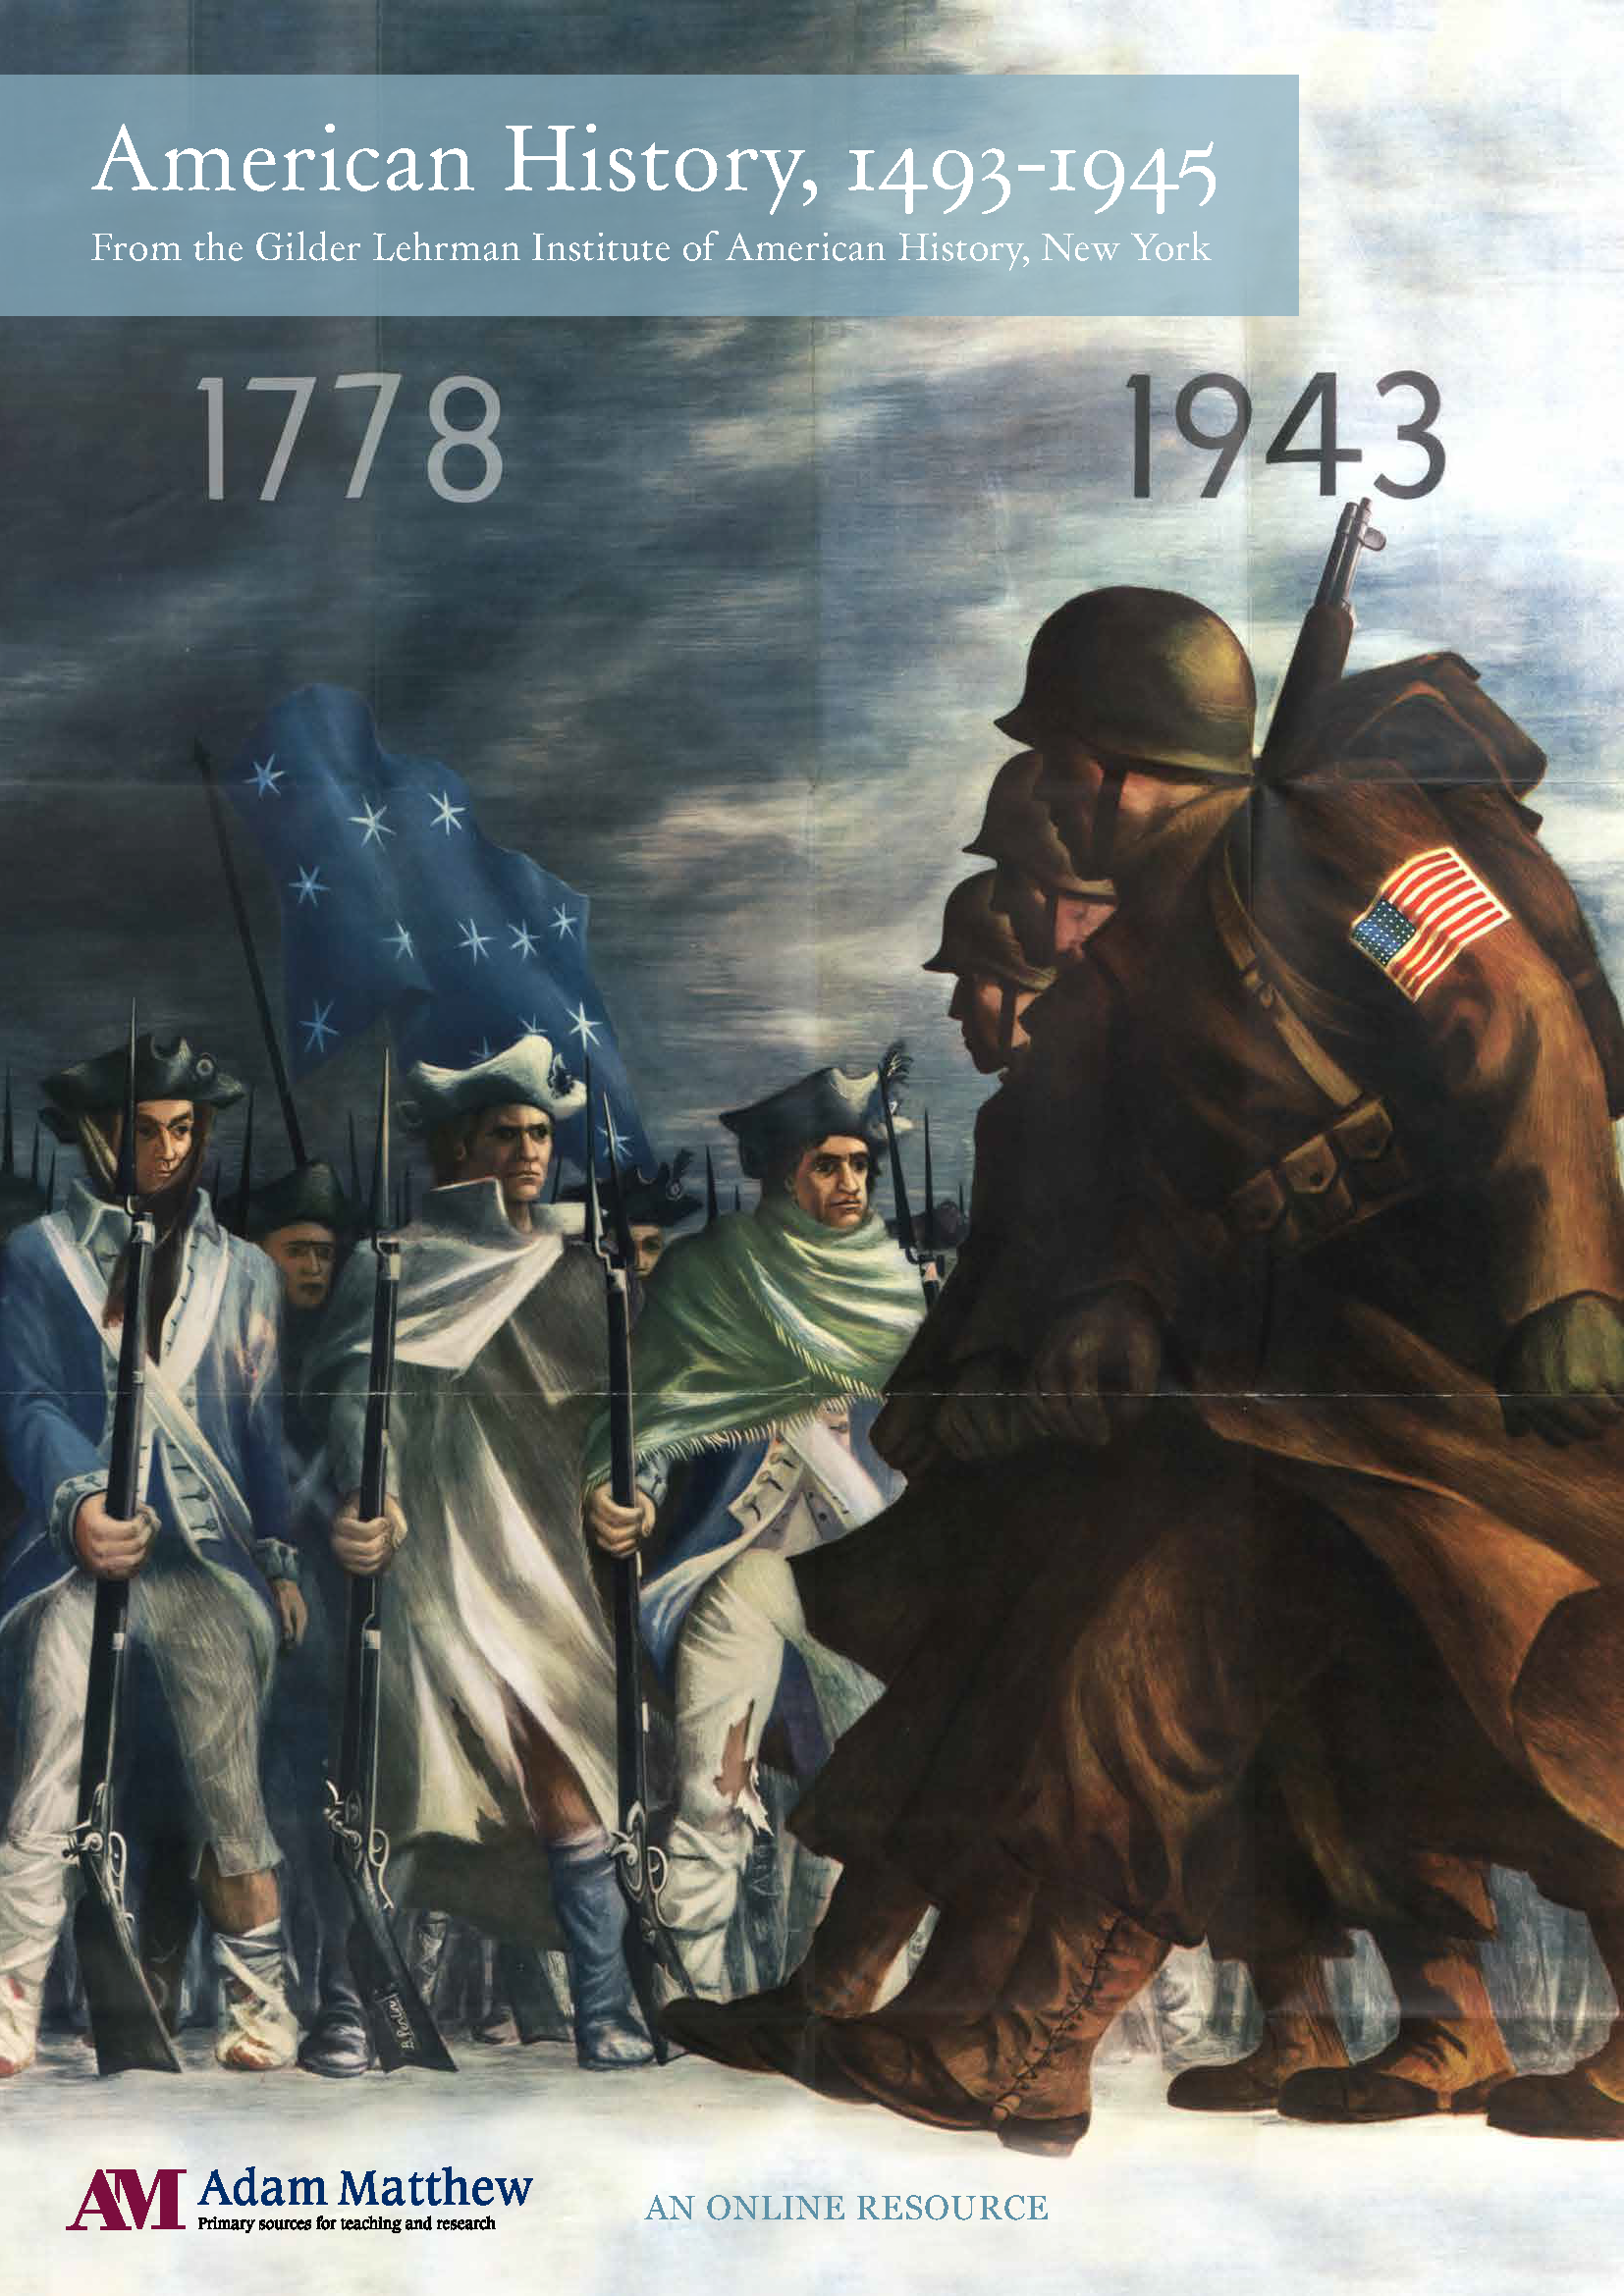 Poster of of winter with 1778 Colonial soldiers dressed in rags and 1943 American Soldiers marching off to war